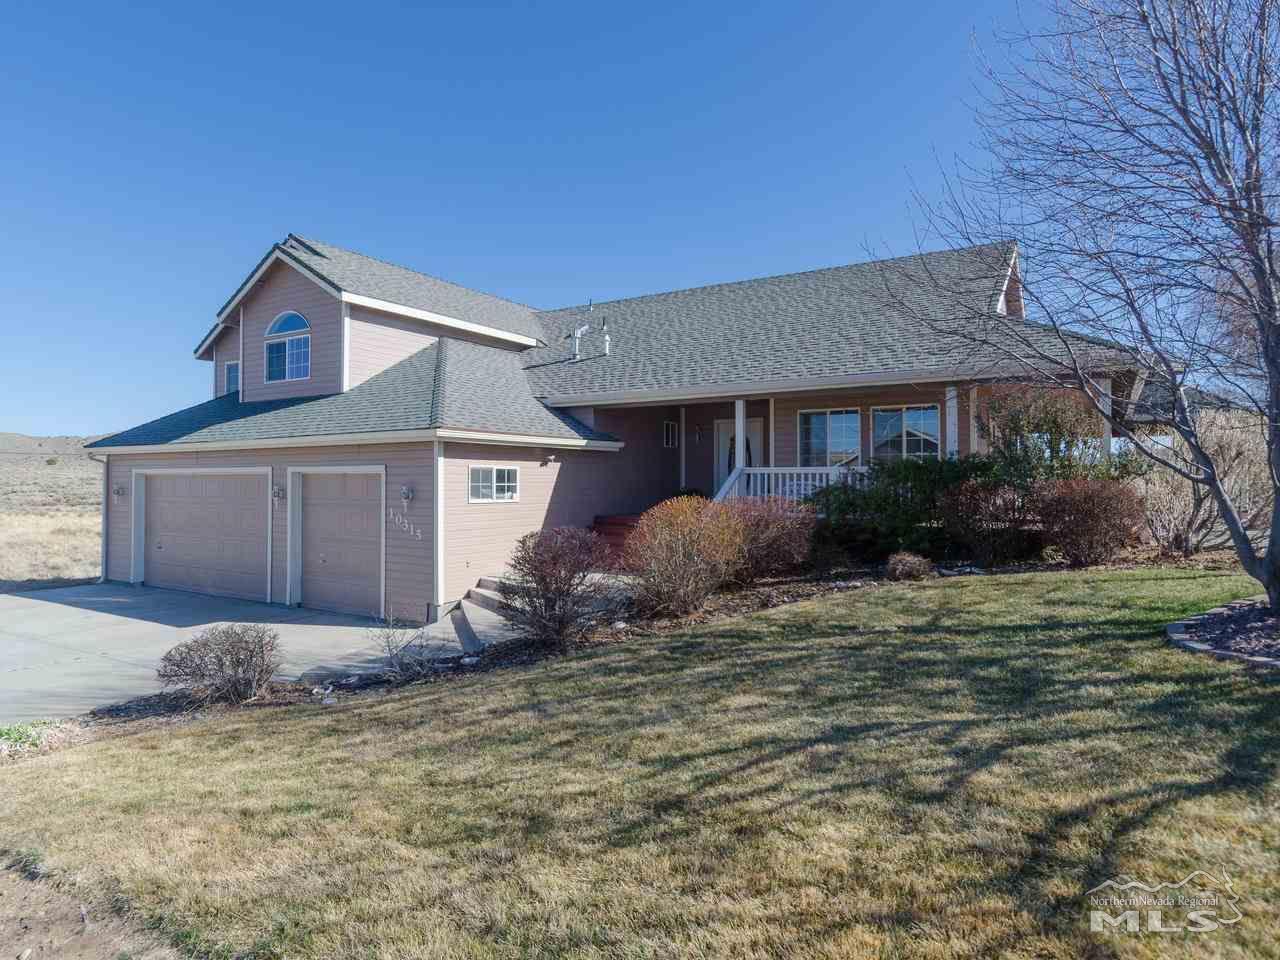 Image for 10315 Placerville, Reno, NV 89508-8523